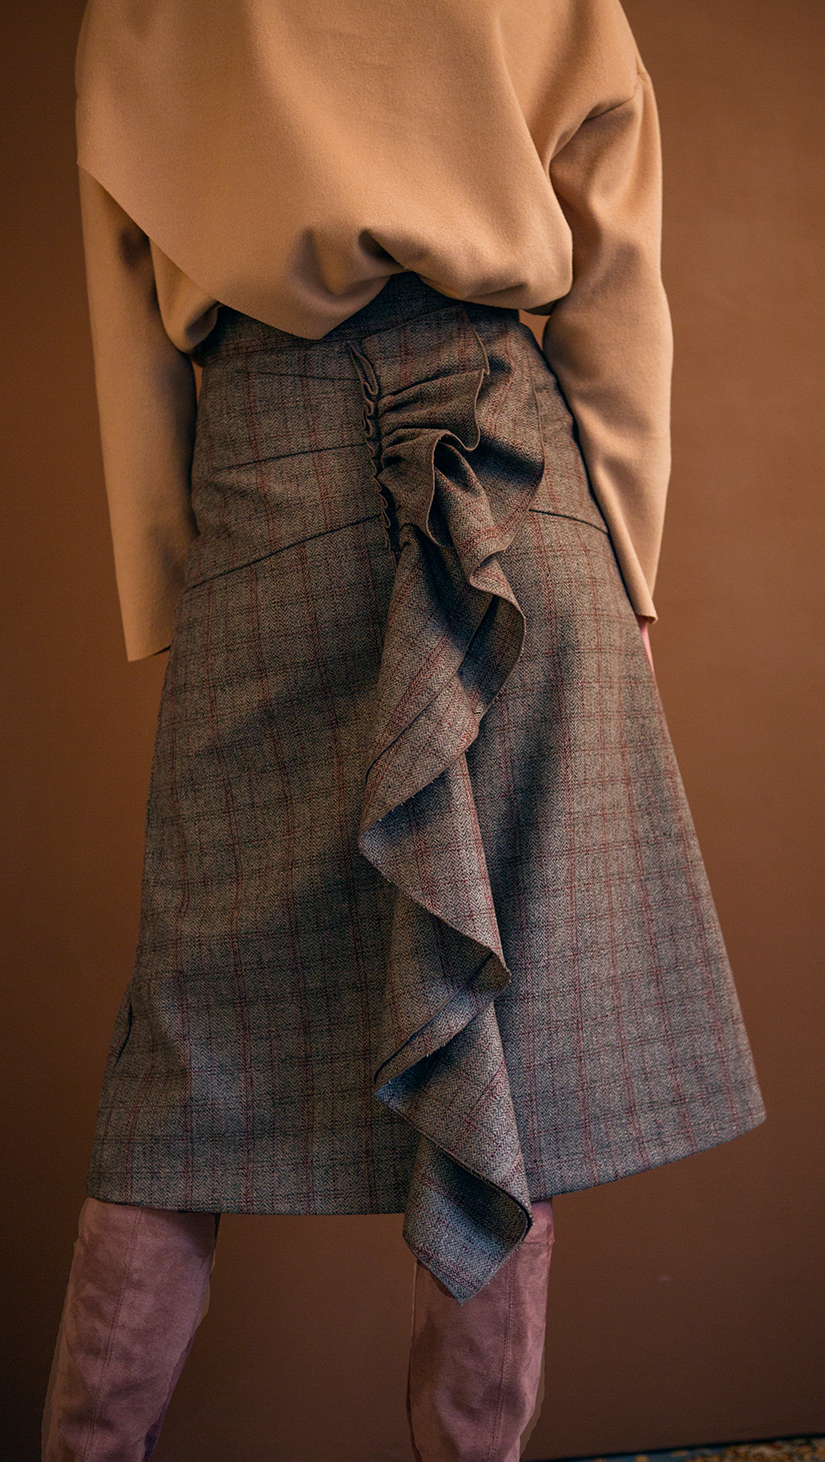 The Charlie Skirt in patterned with grey plaid. With a high-waisted polished A-line style with back ruffle details. Over-the-knee length. Concealed zip closure. No pockets.